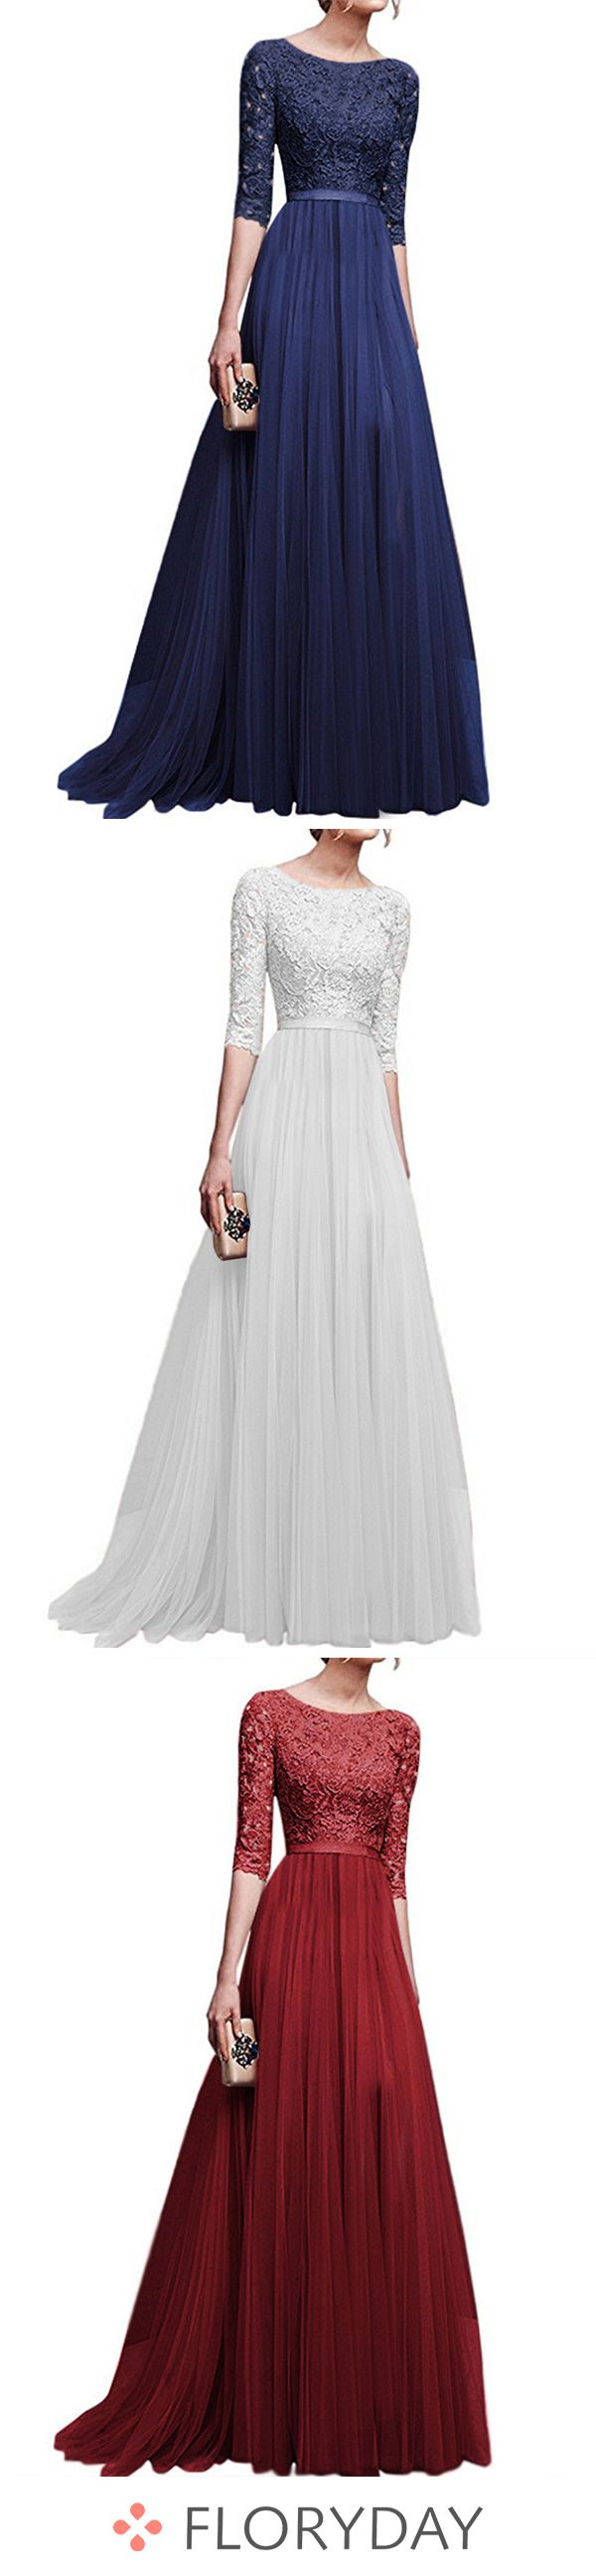 Solid Lace Half Sleeve Maxi A-line Dress 2